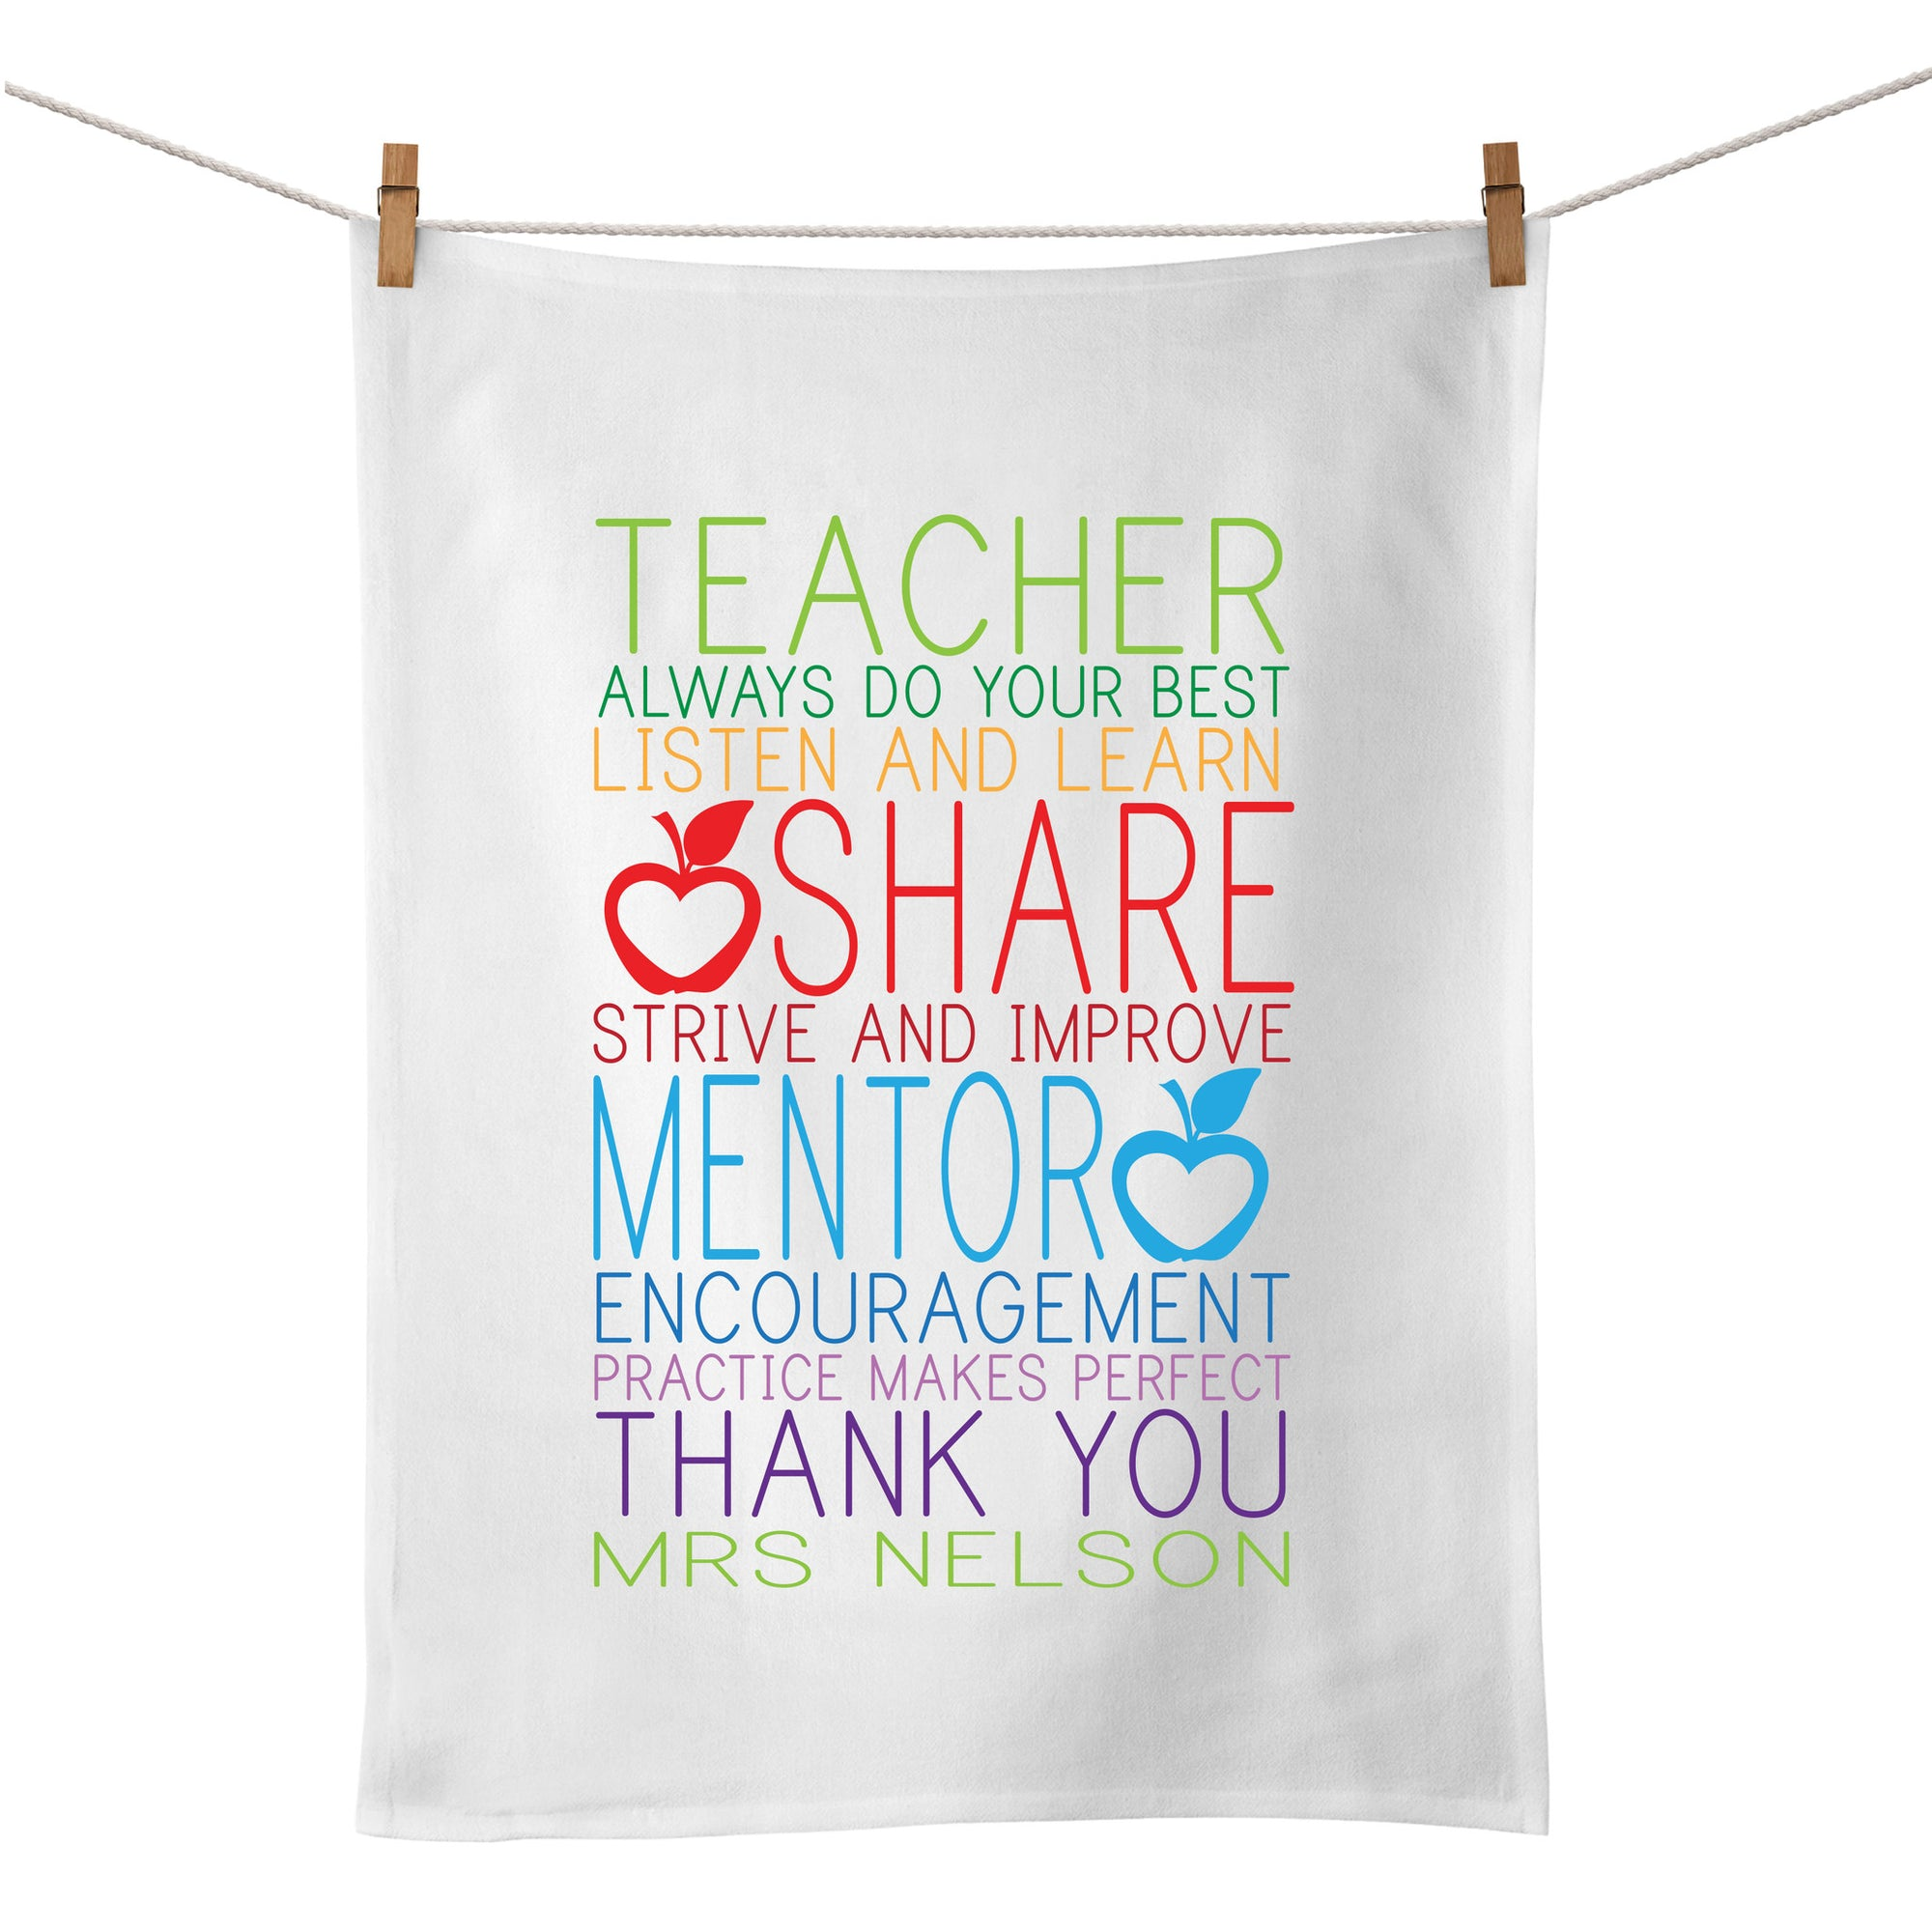 All About Learning Tea Towel